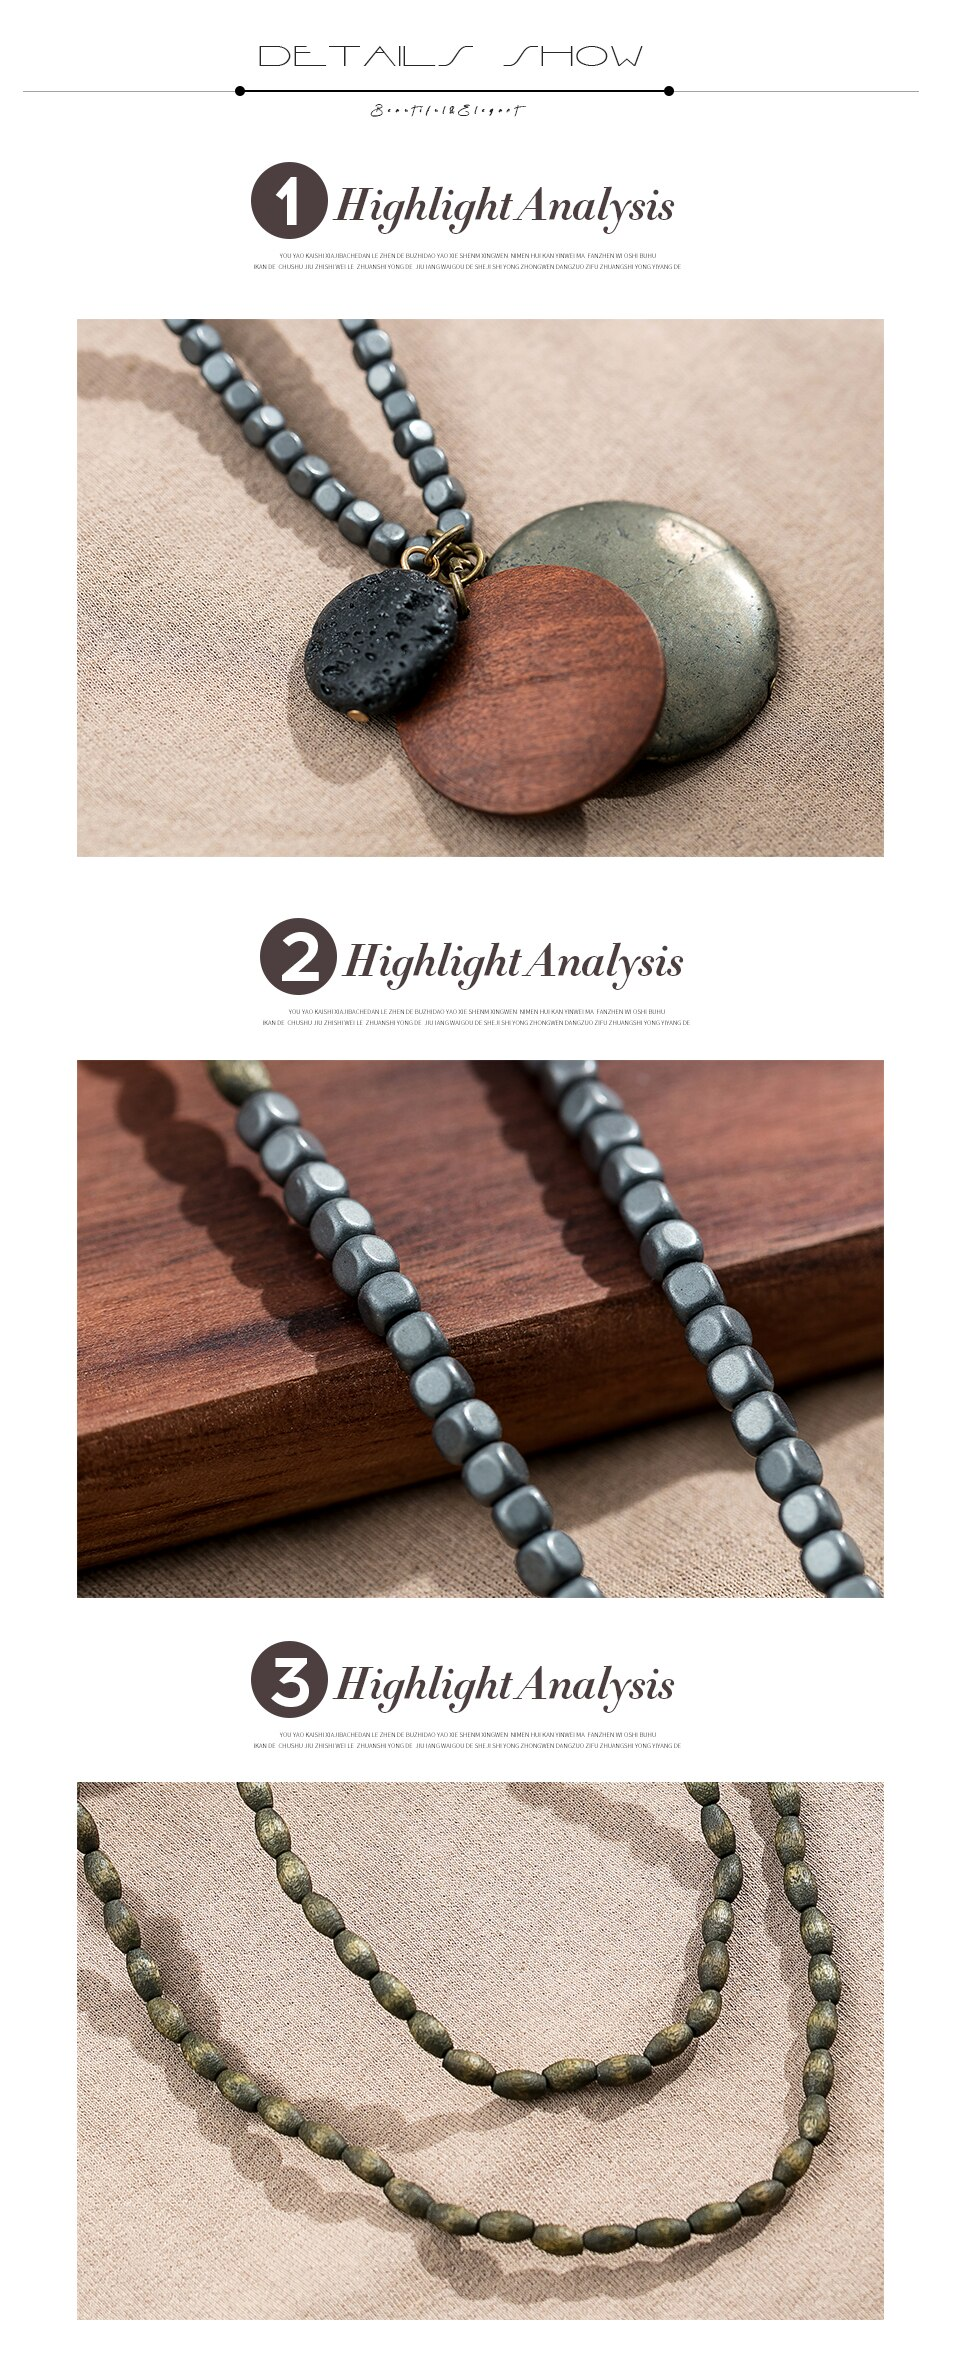 Stone Beads Long Necklace for Jewelry Vintage Rope Chain Necklaces necklaces & pendants jewellery suspension Chokers 2020 New